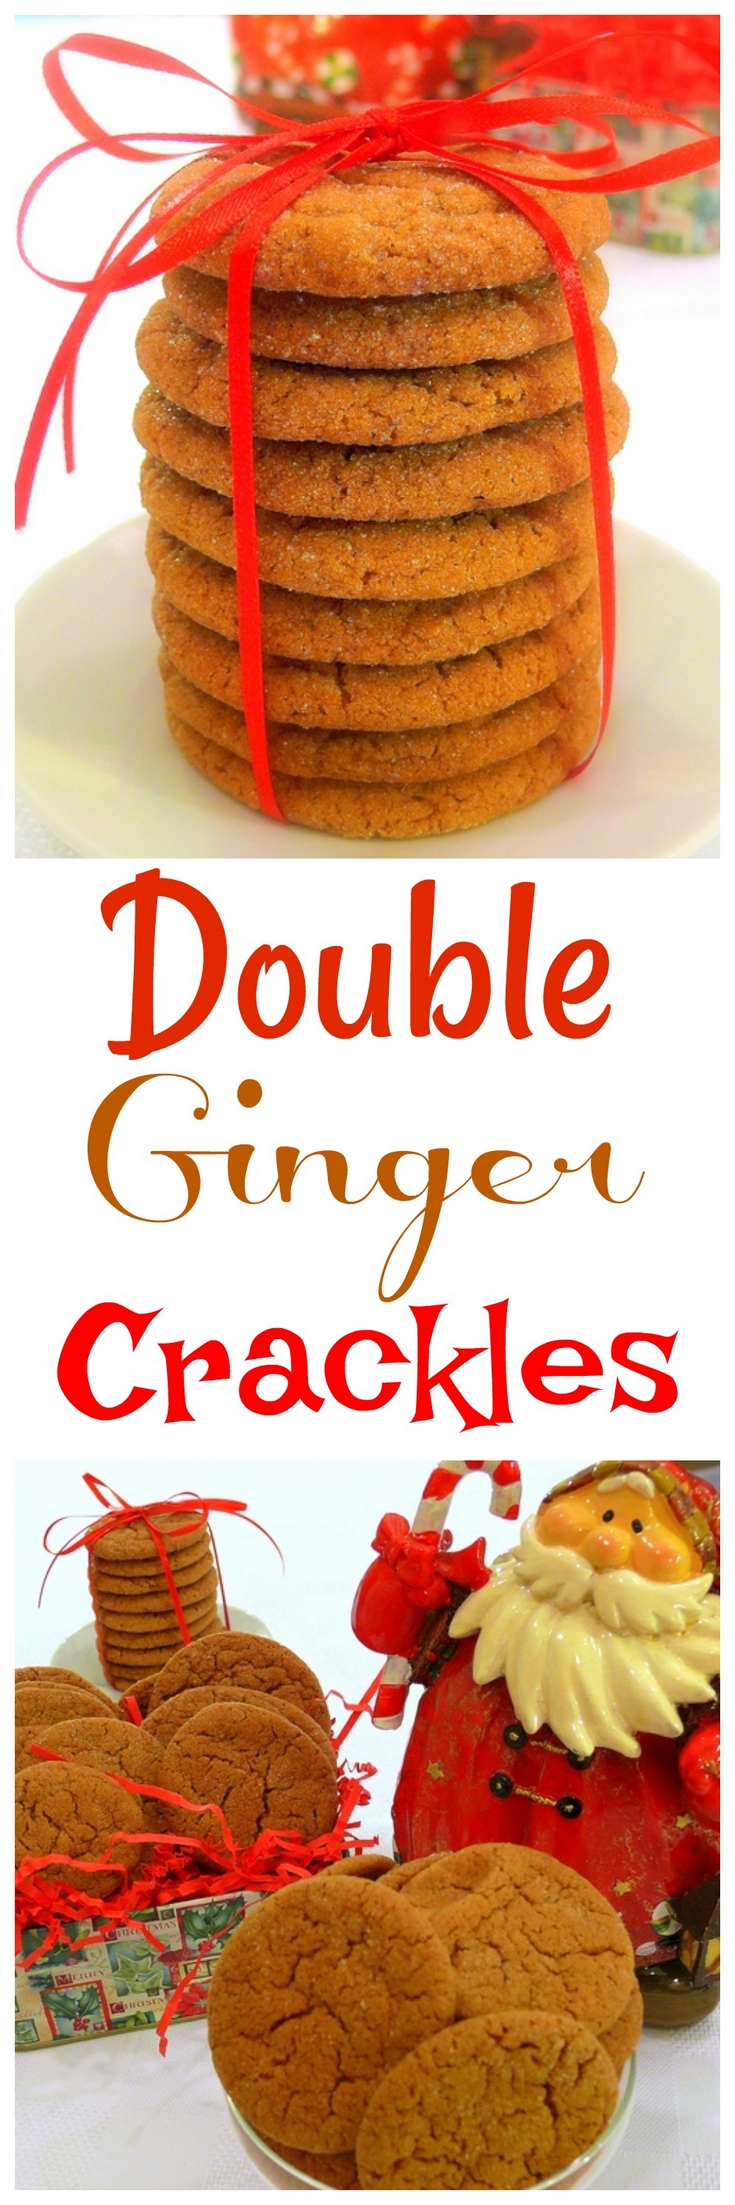 A double whammy of ginger, ground and crystallized in these delicious Double Ginger Crackles. They are perfect for a holiday cookies tray or for snacking year round, from NoblePig.com. via @cmpollak1